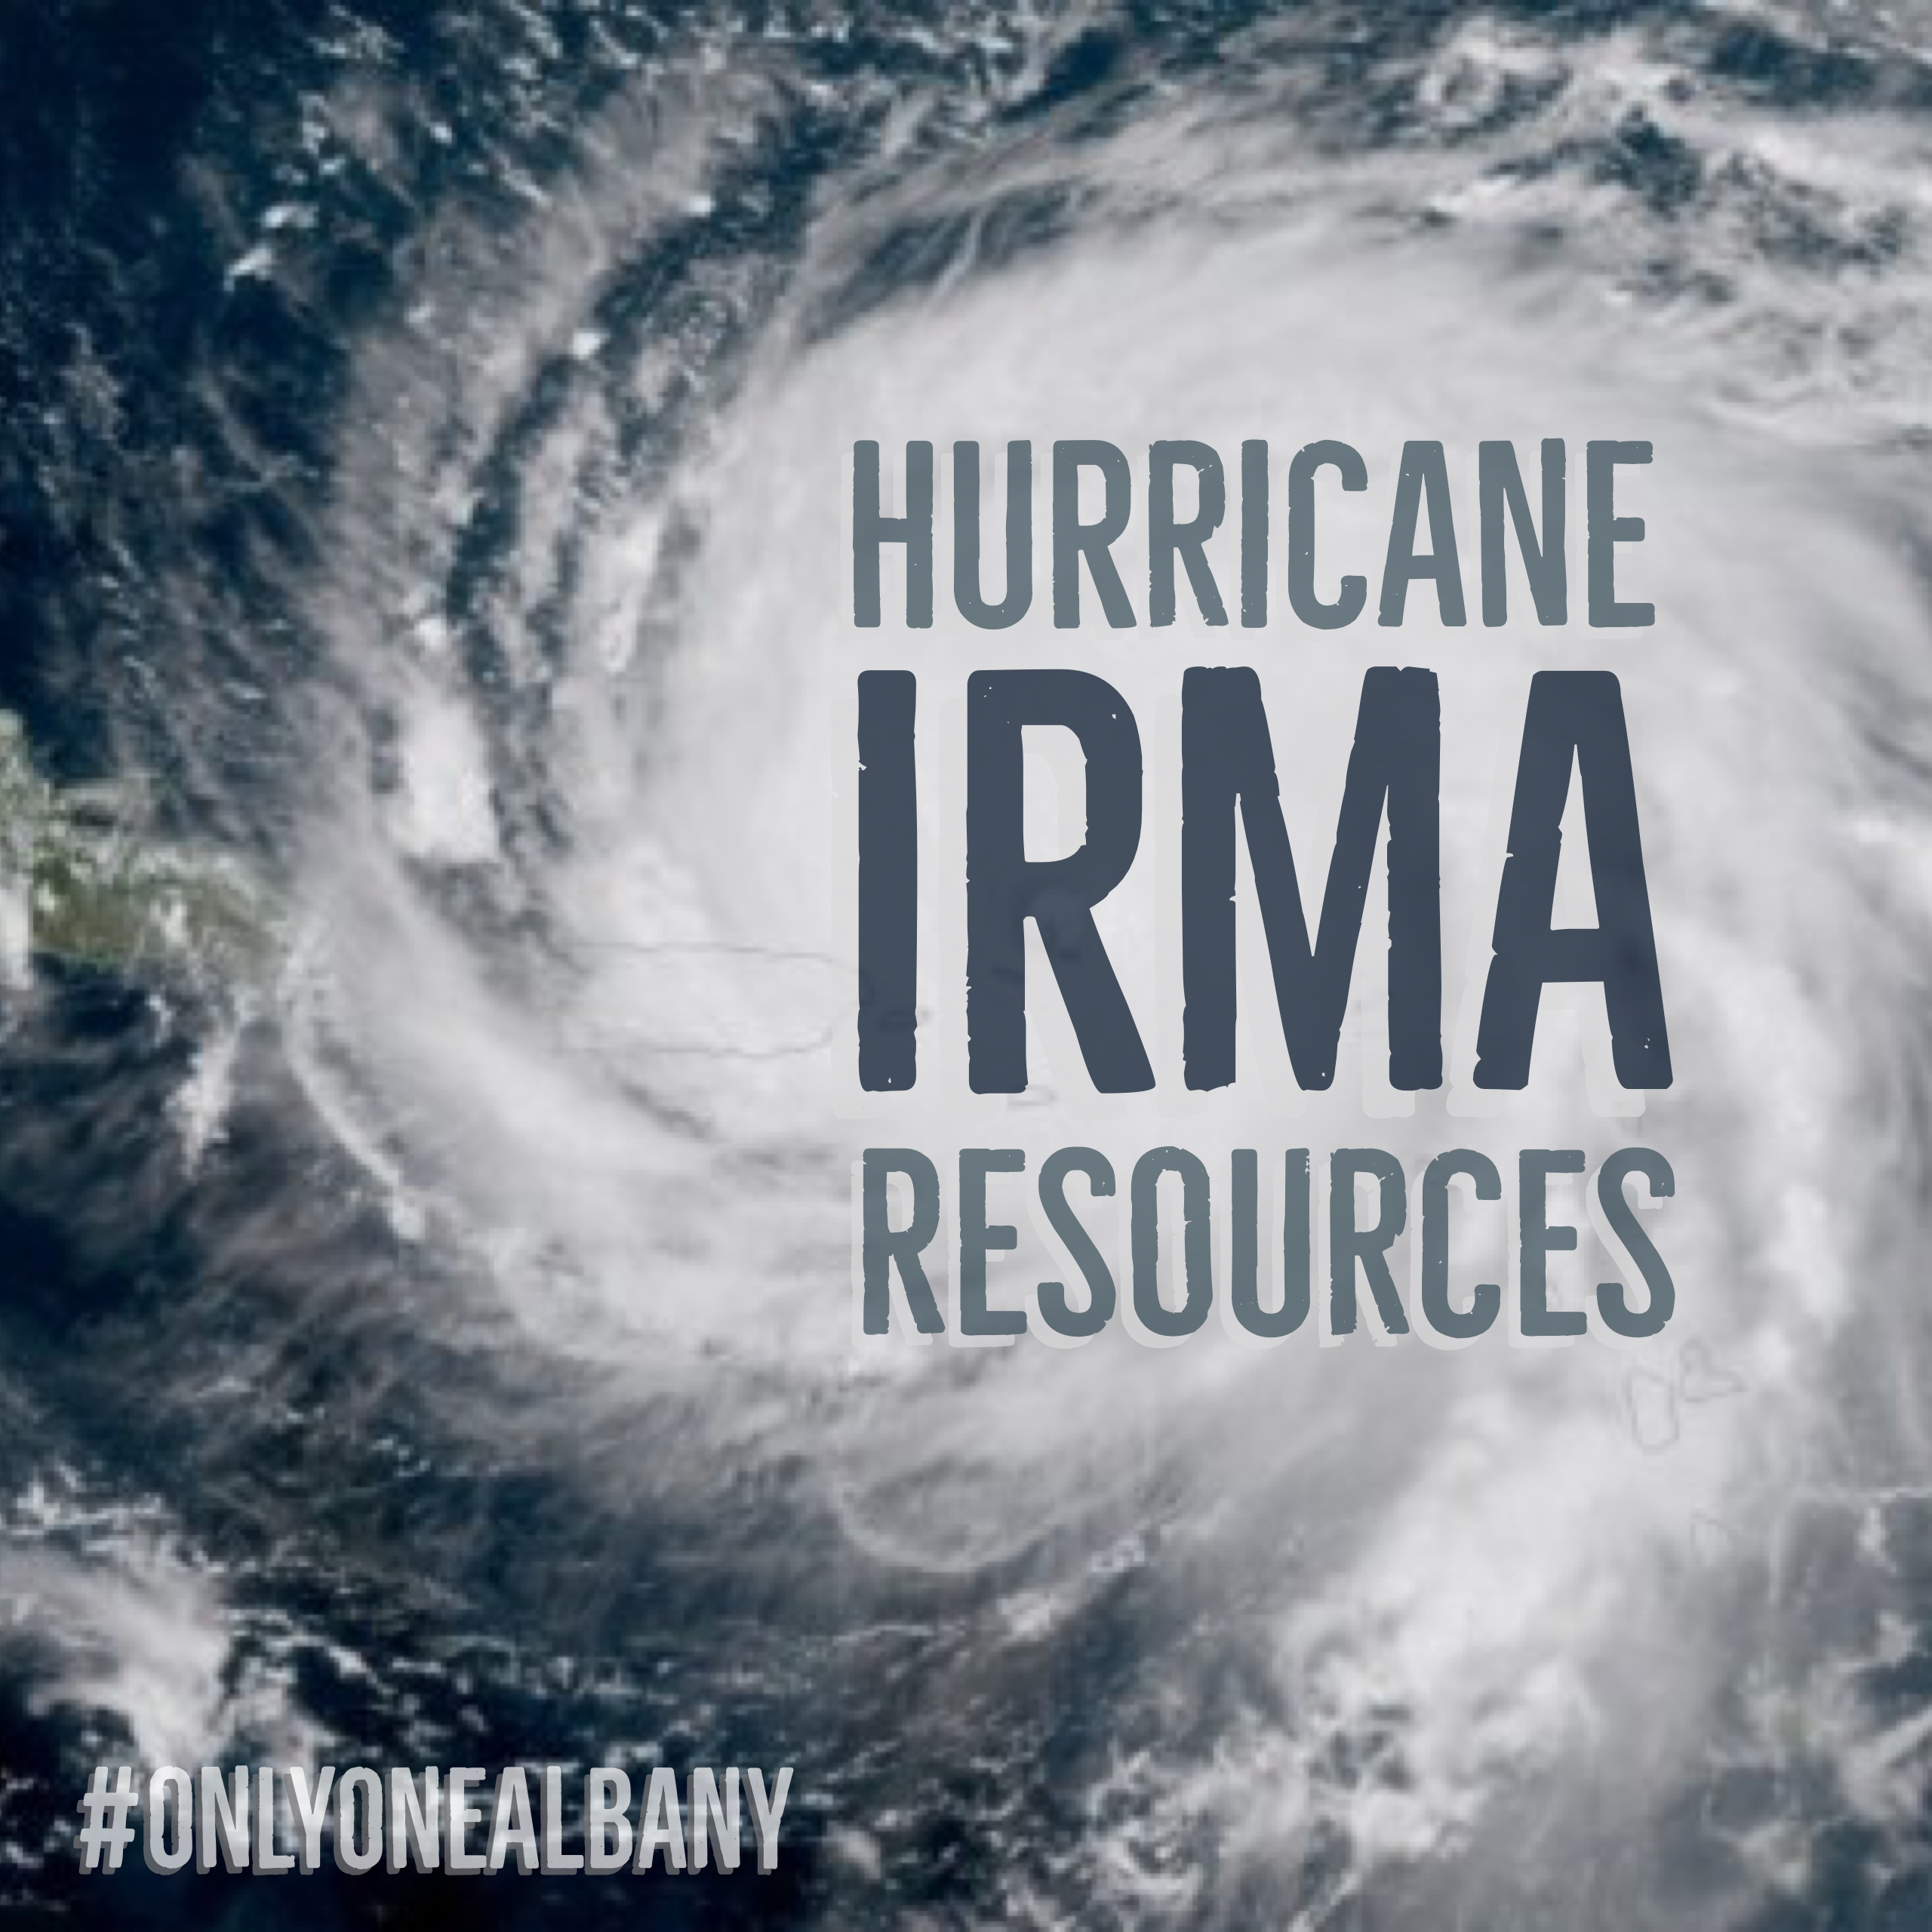 Hurricane Irma Resources - #OnlyOneAlbany